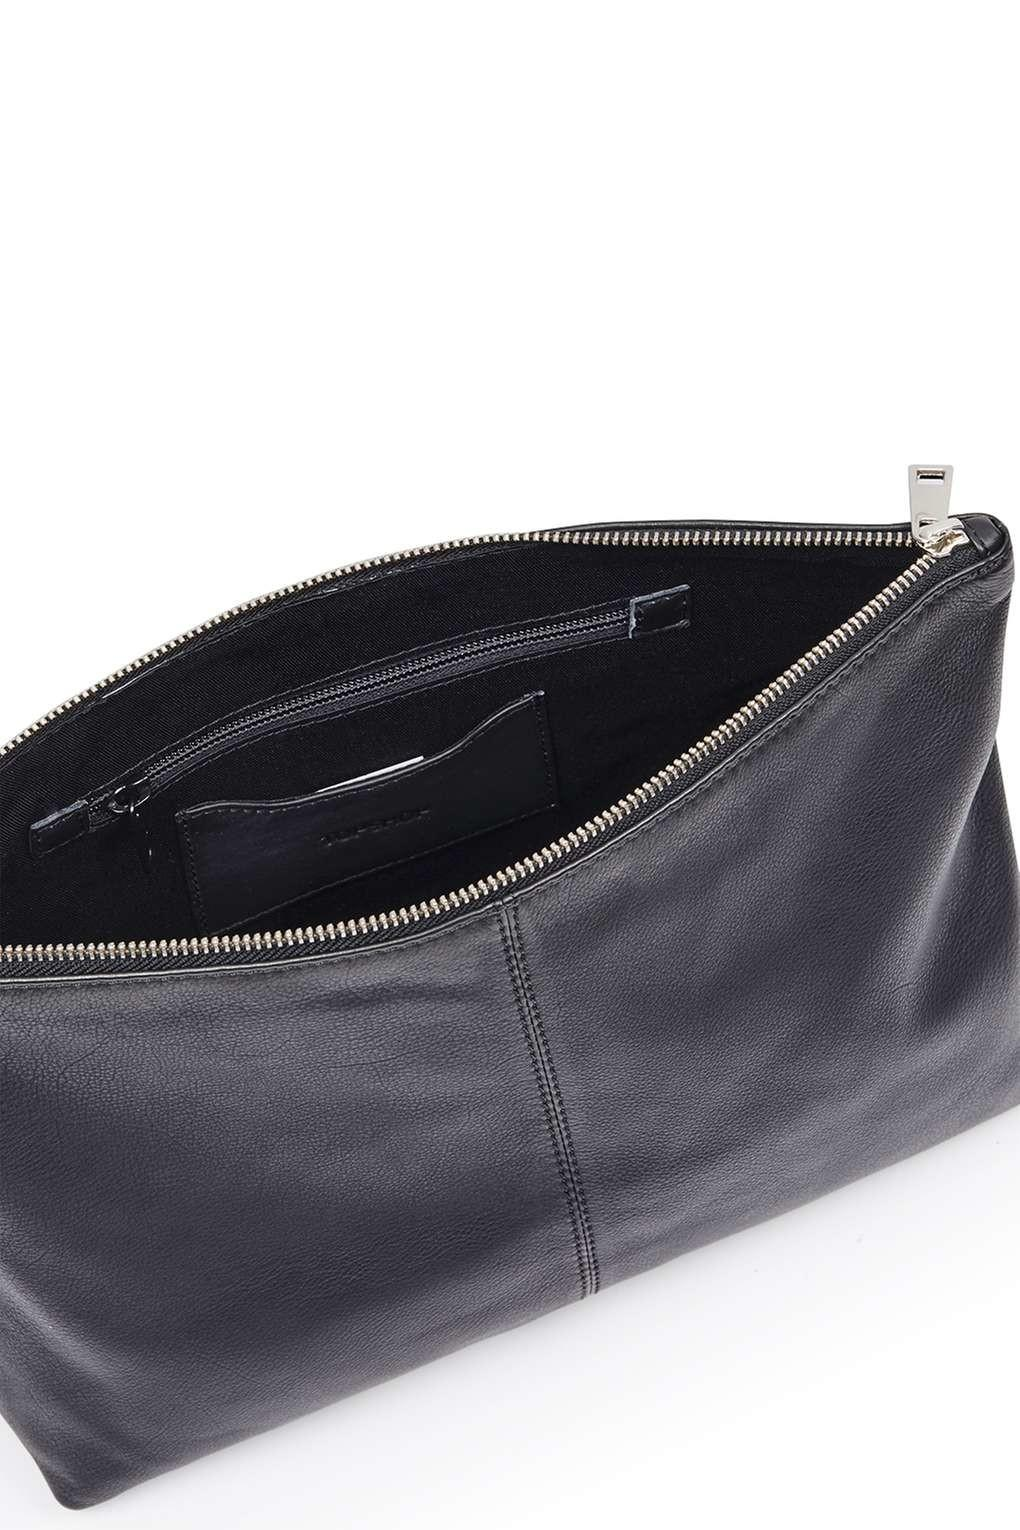 Real Leather Flap Over Clutch Topshop